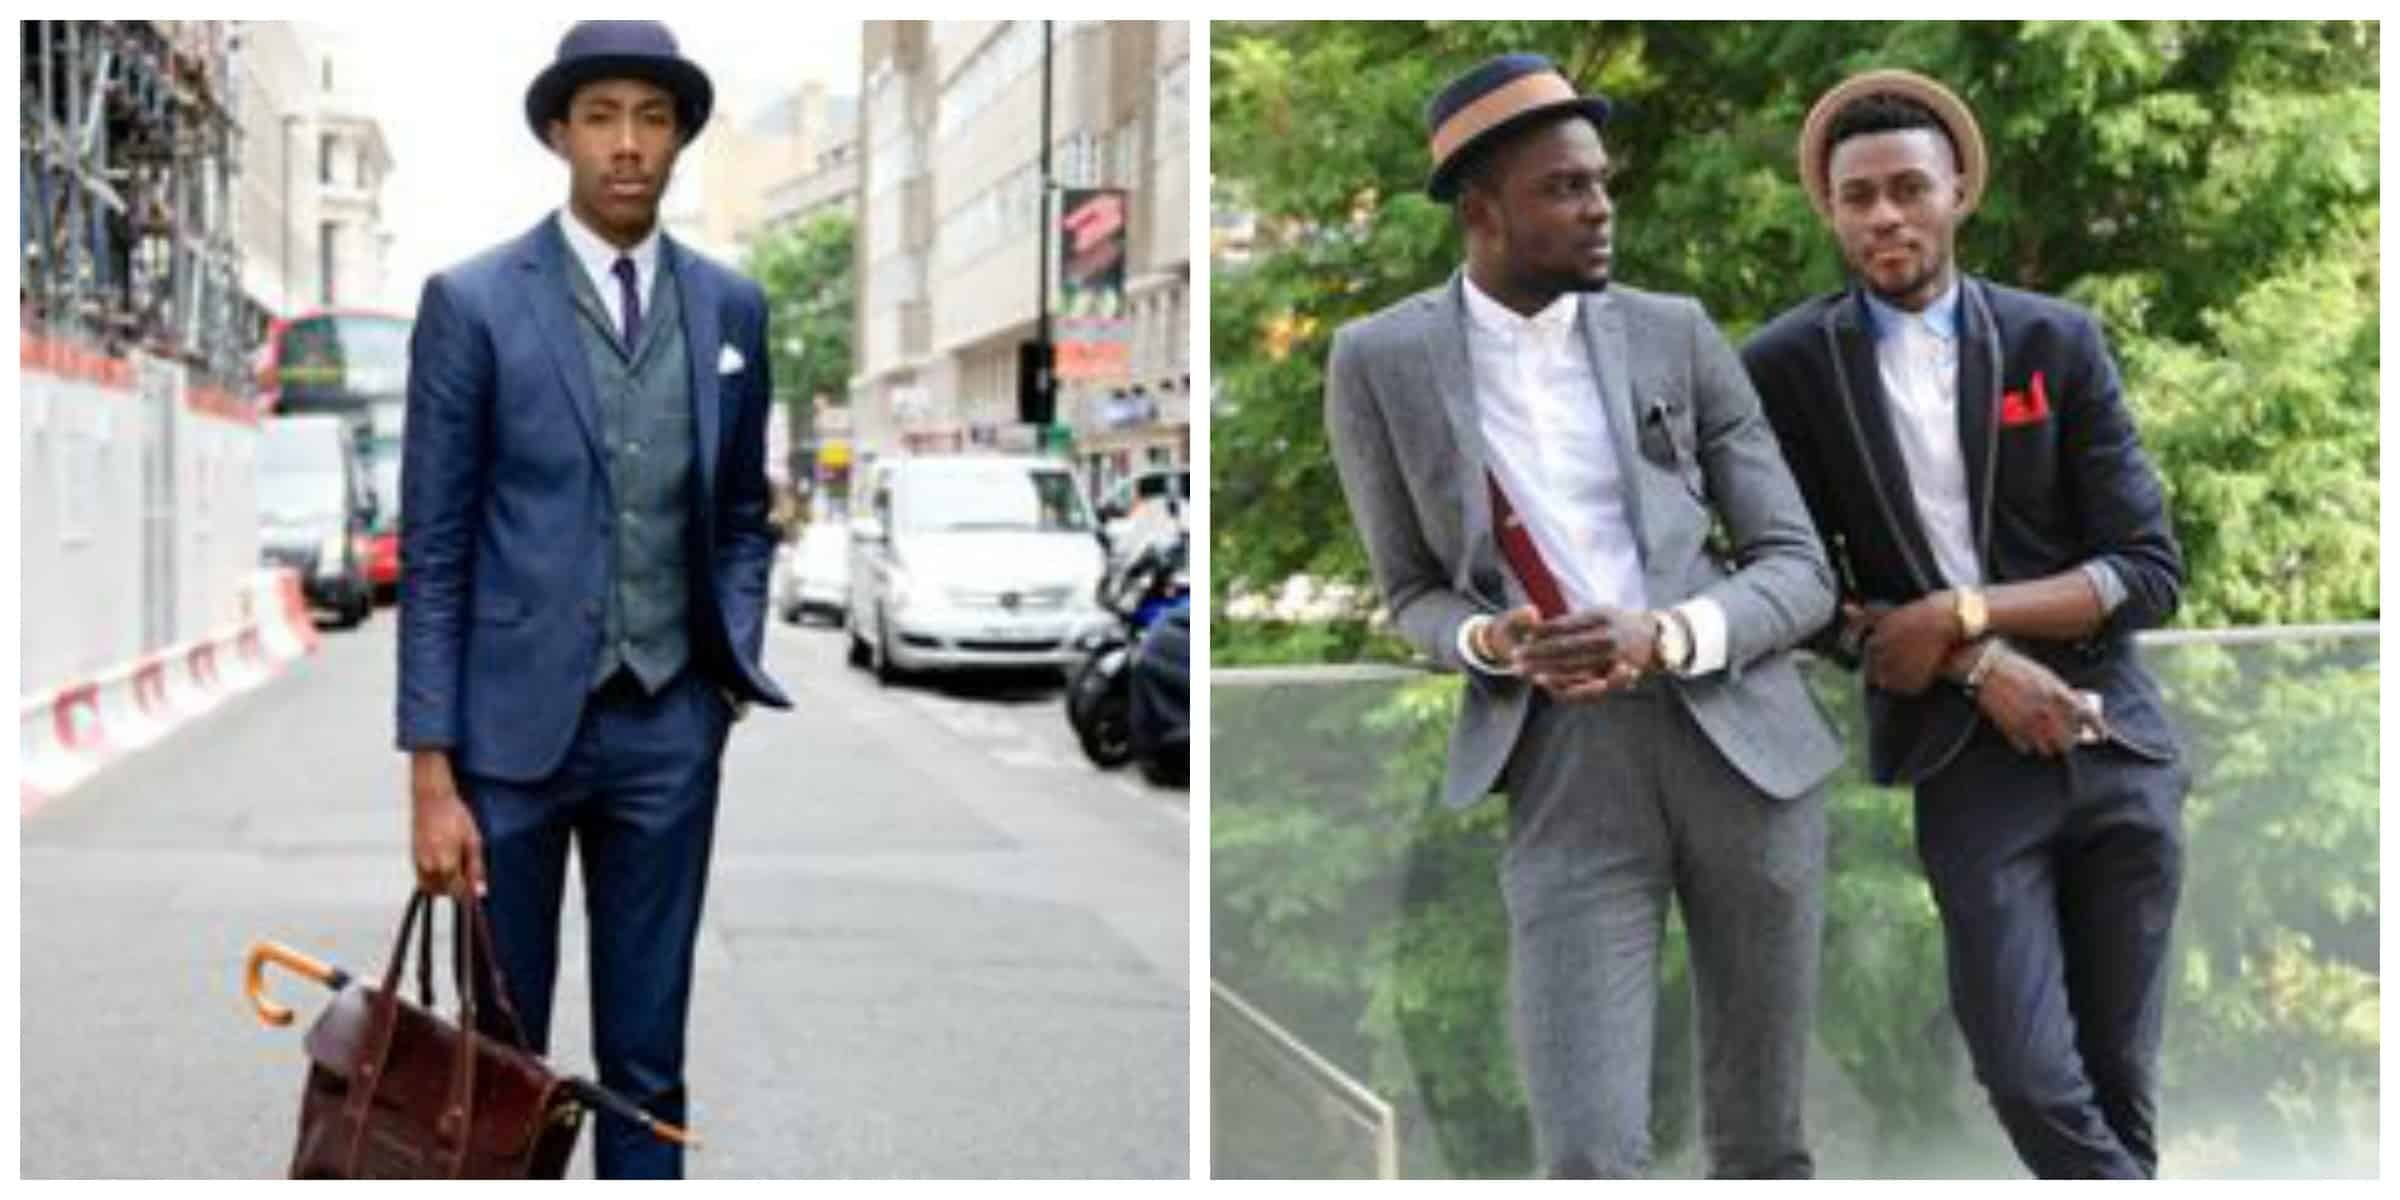 men-fedora-hats-fashion-retro